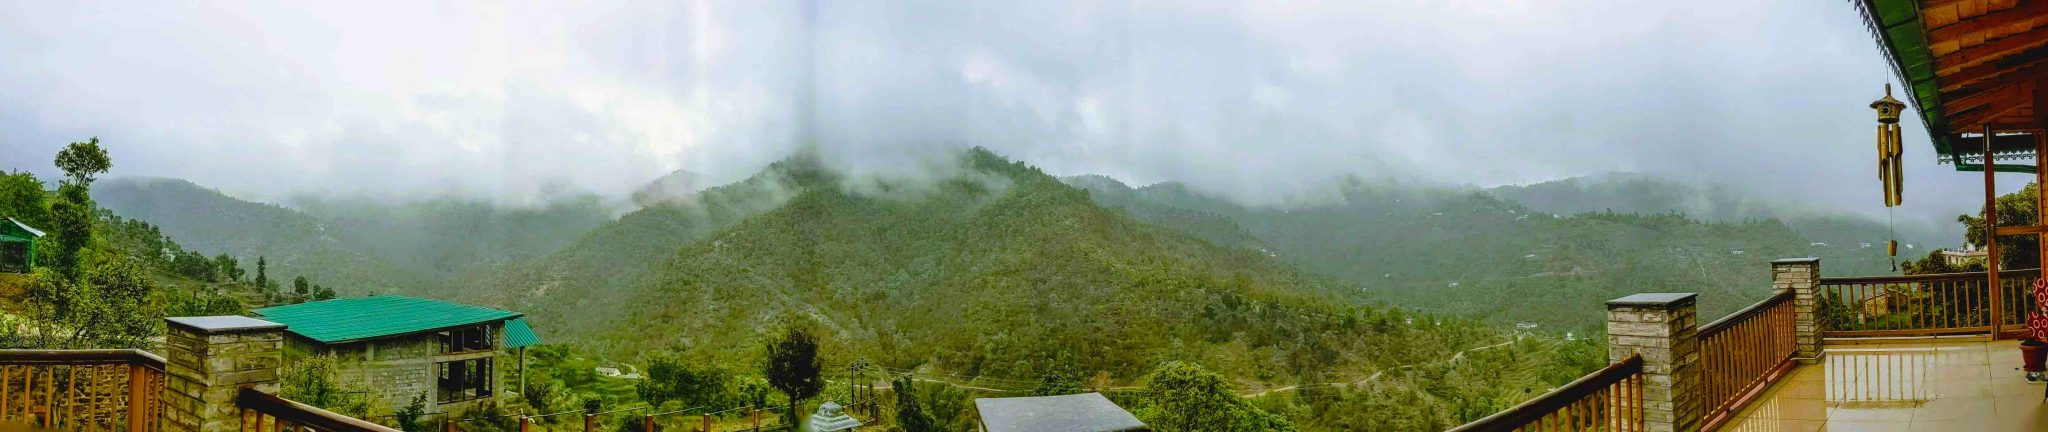 Parvada-Bungalows - One of the best stay options near Mukteshwar